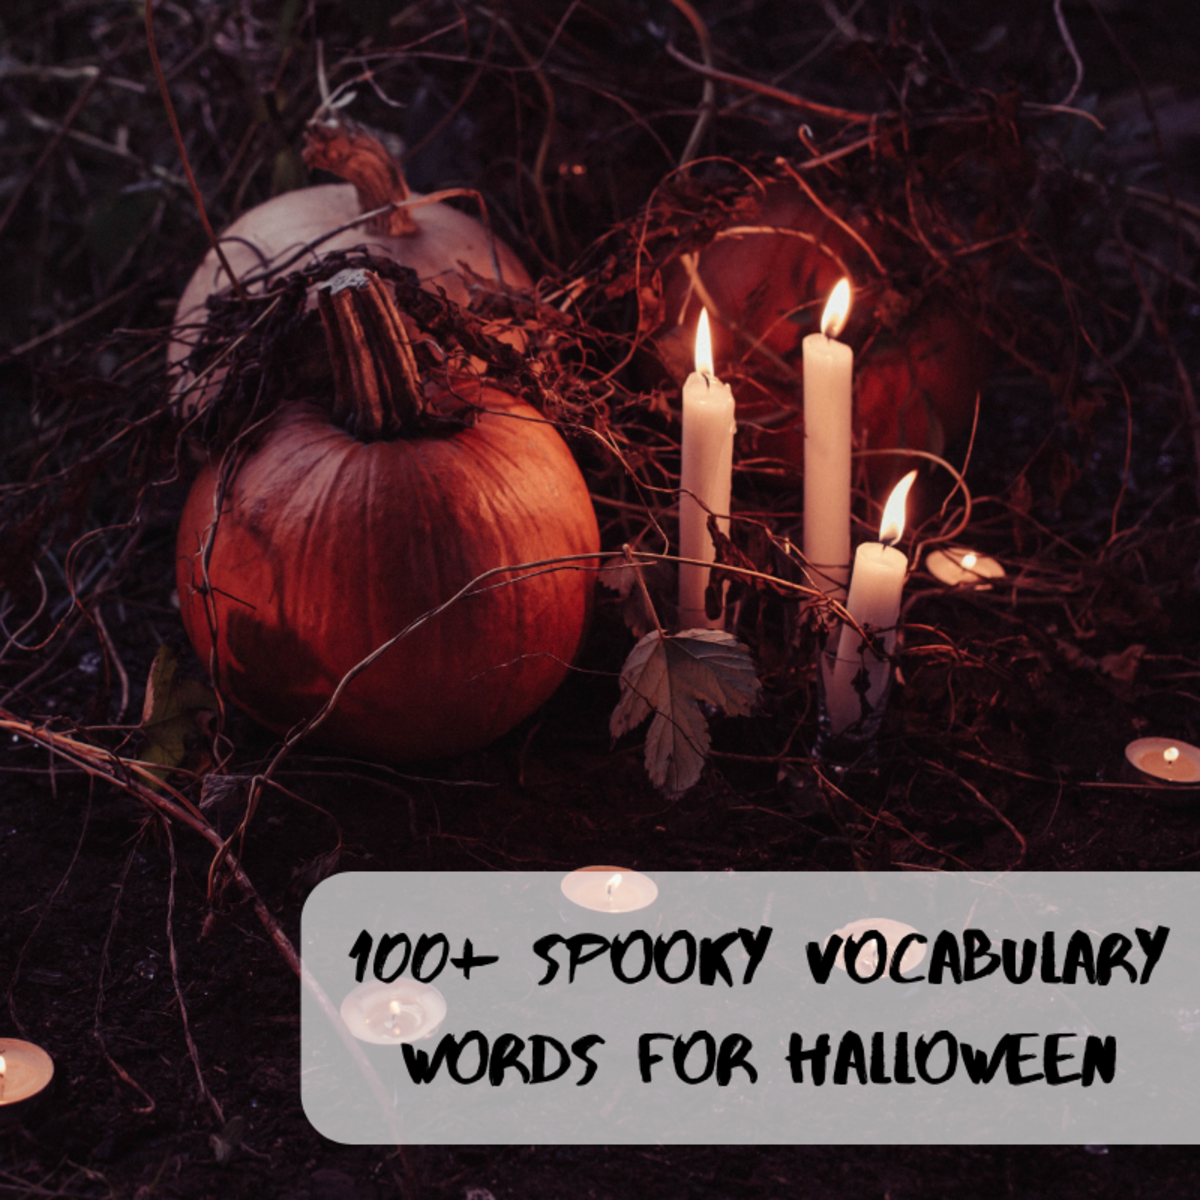 100+ Spooky Halloween Vocabulary Words for Kids